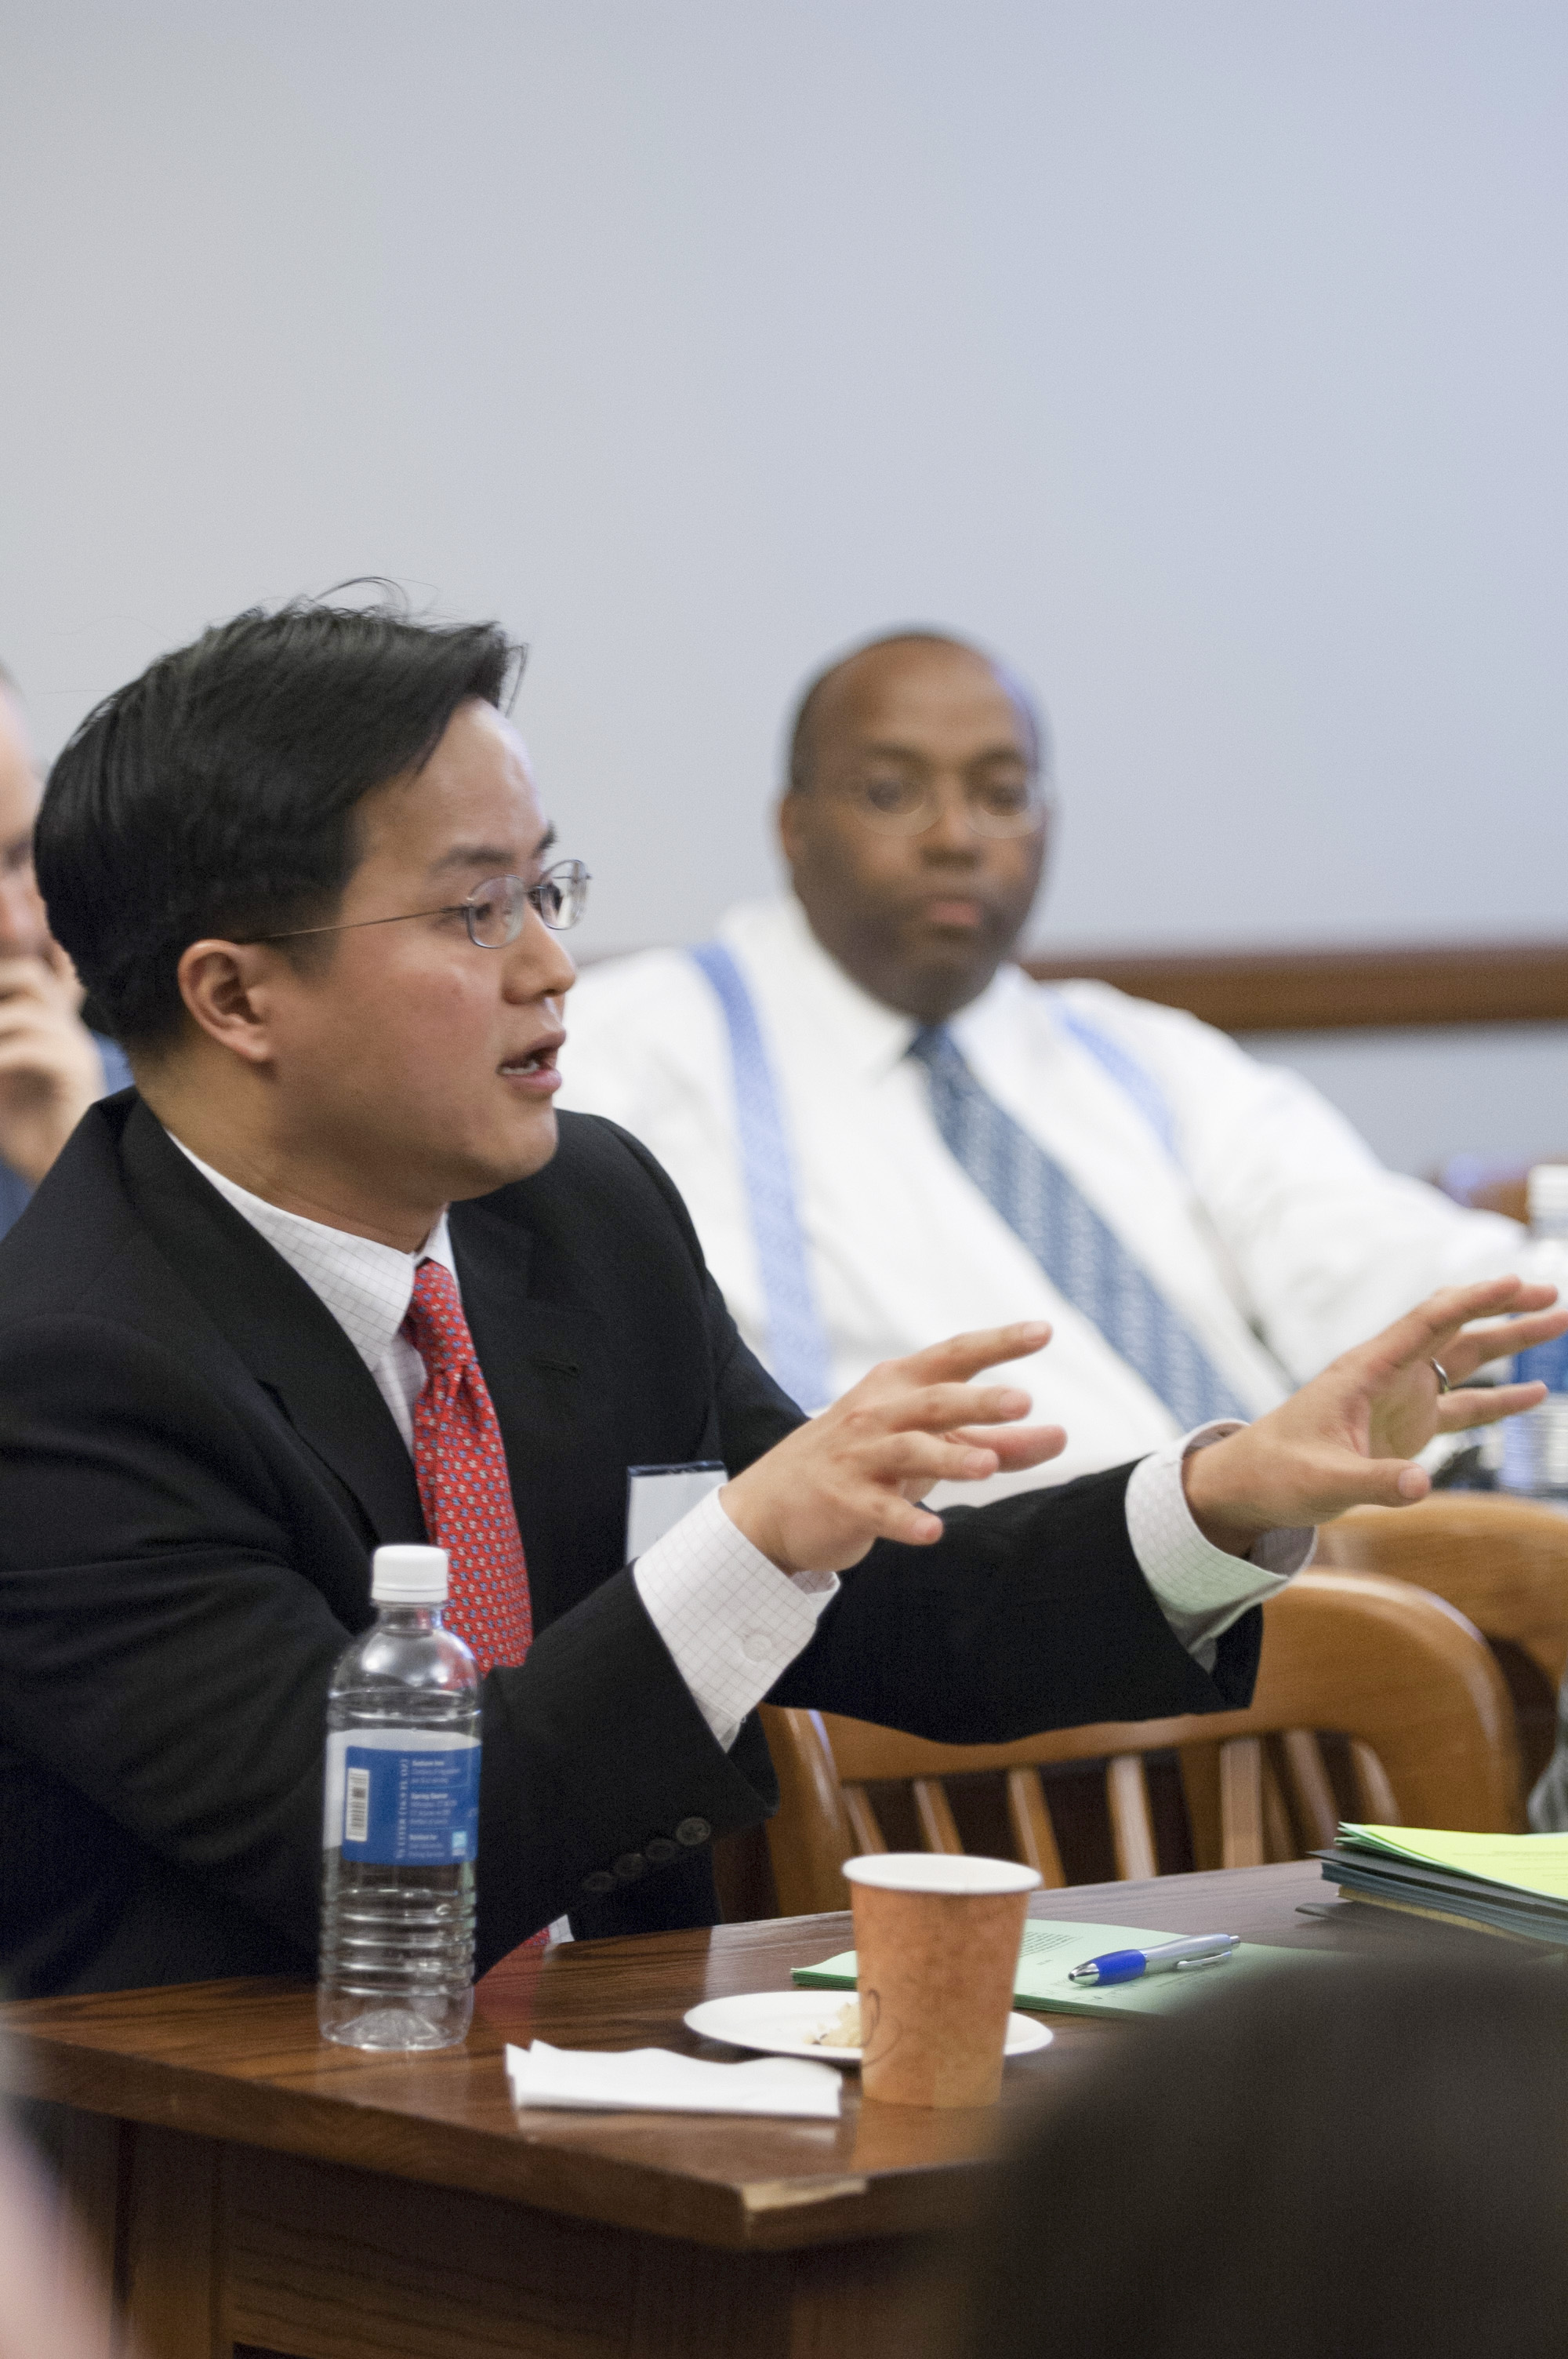 UVA Law Prof. Albert Choi '01 (foreground) and Francis Byrd (background)